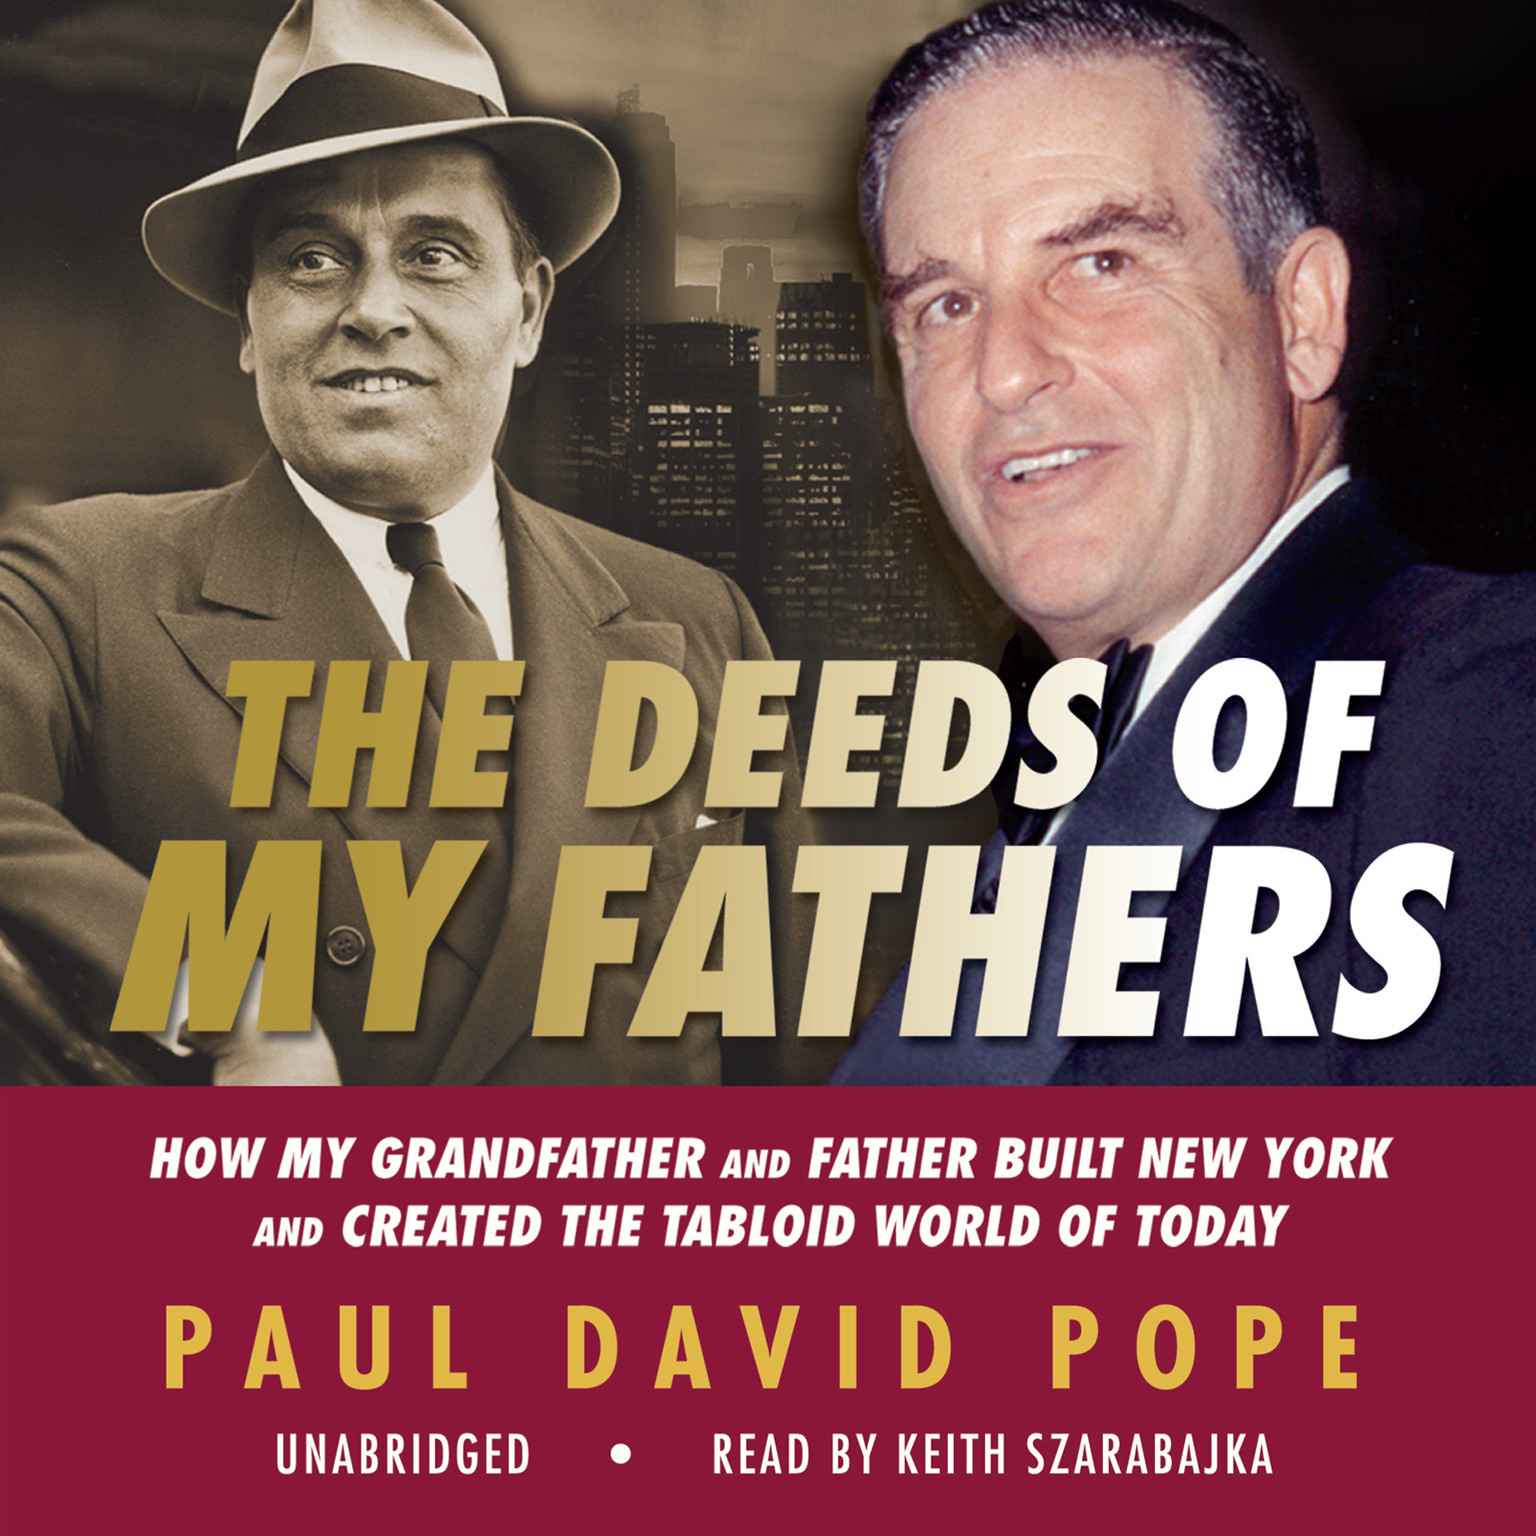 Printable The Deeds of My Fathers: How My Grandfather and Father Built New York and Created the Tabloid World of Today Audiobook Cover Art